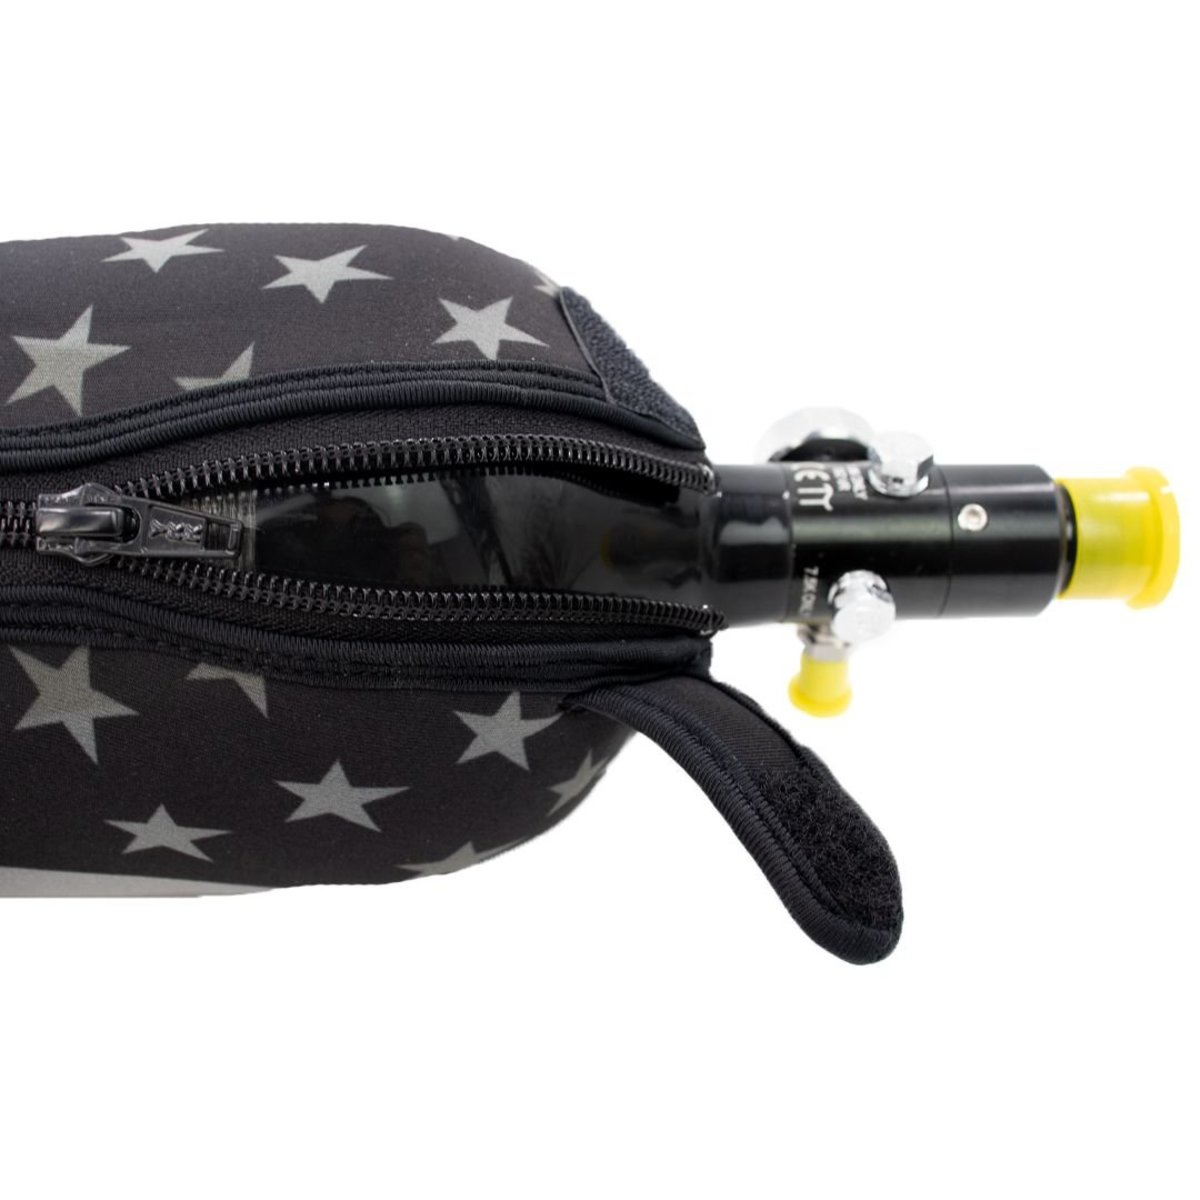 View larger image of Valken Fate GFX Tank Cover - Merica Silver